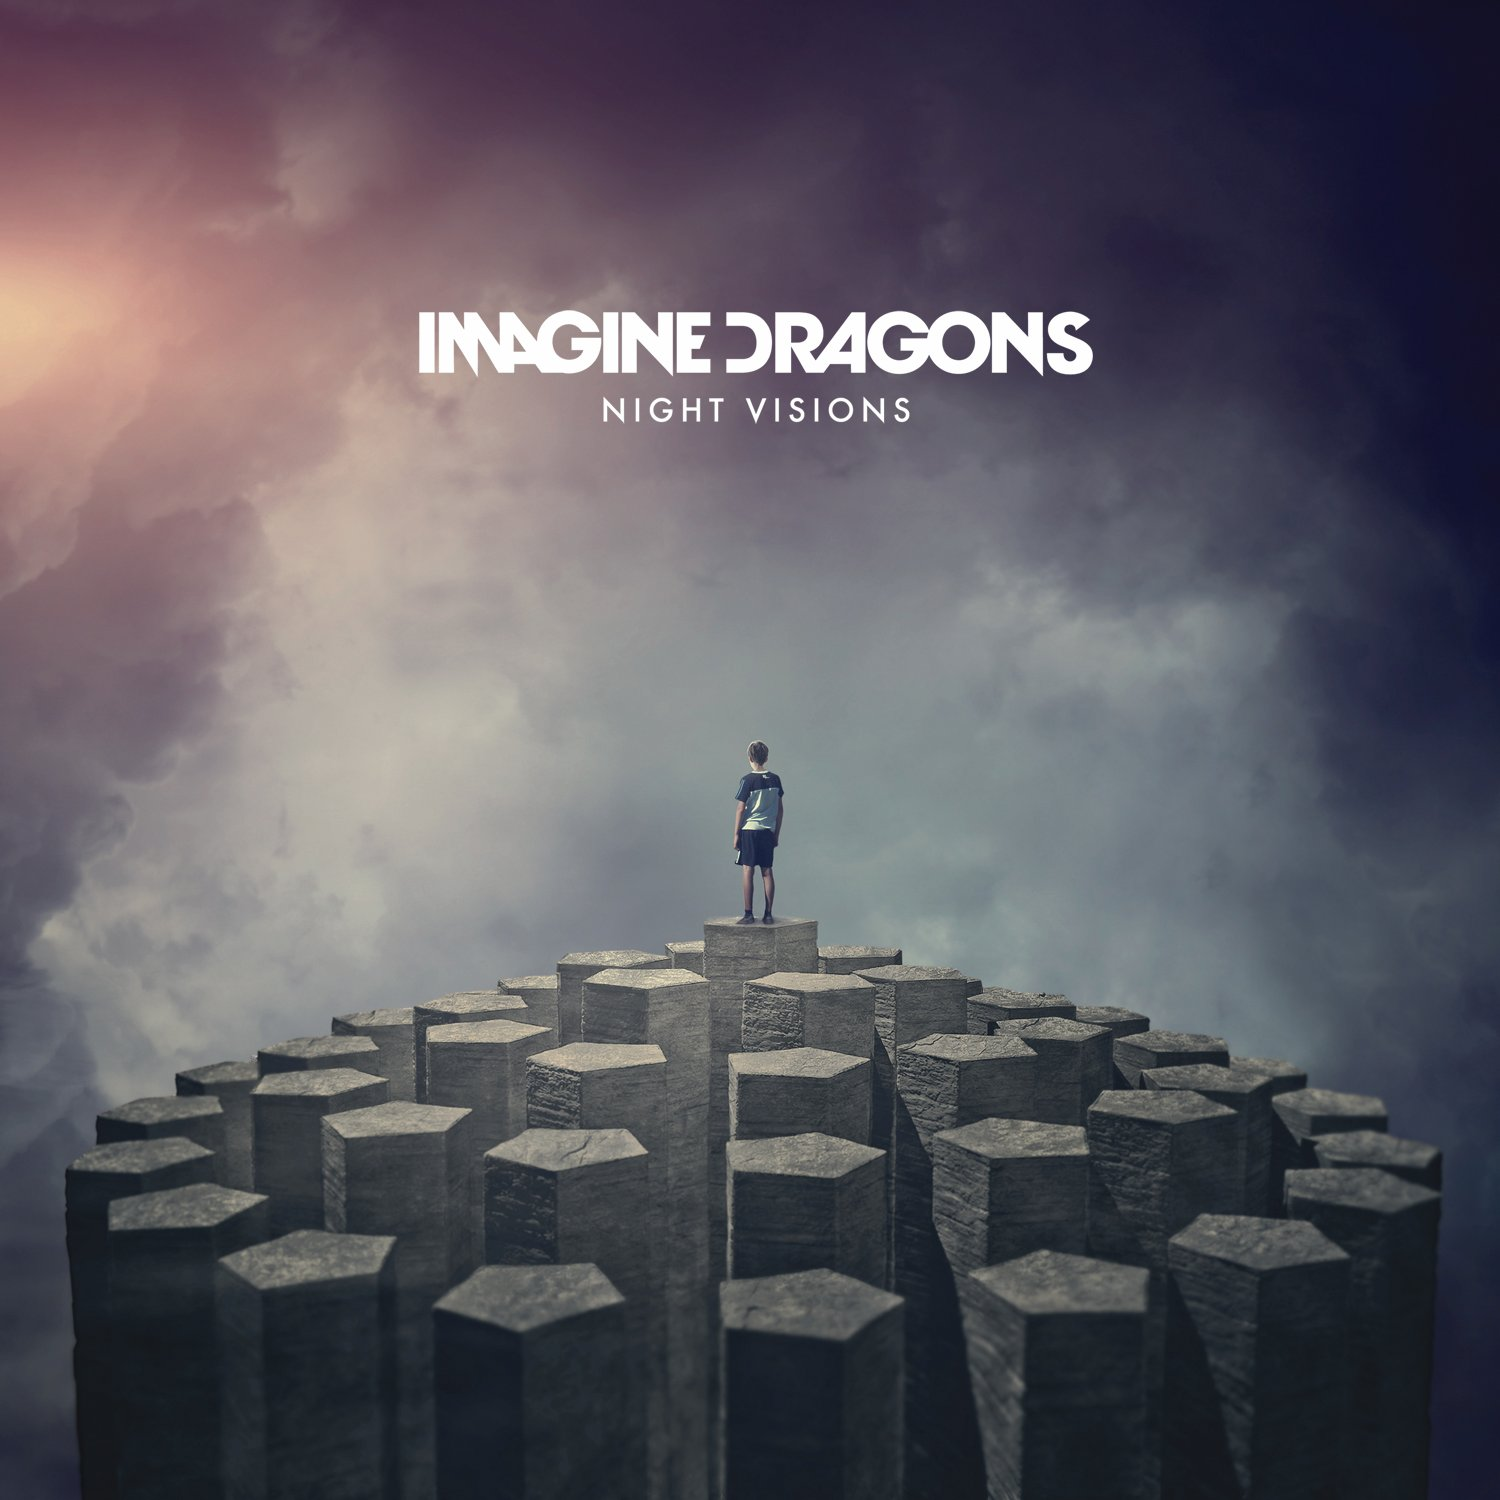 Imagine Dragons Night Visions Images amp Pictures Becuo